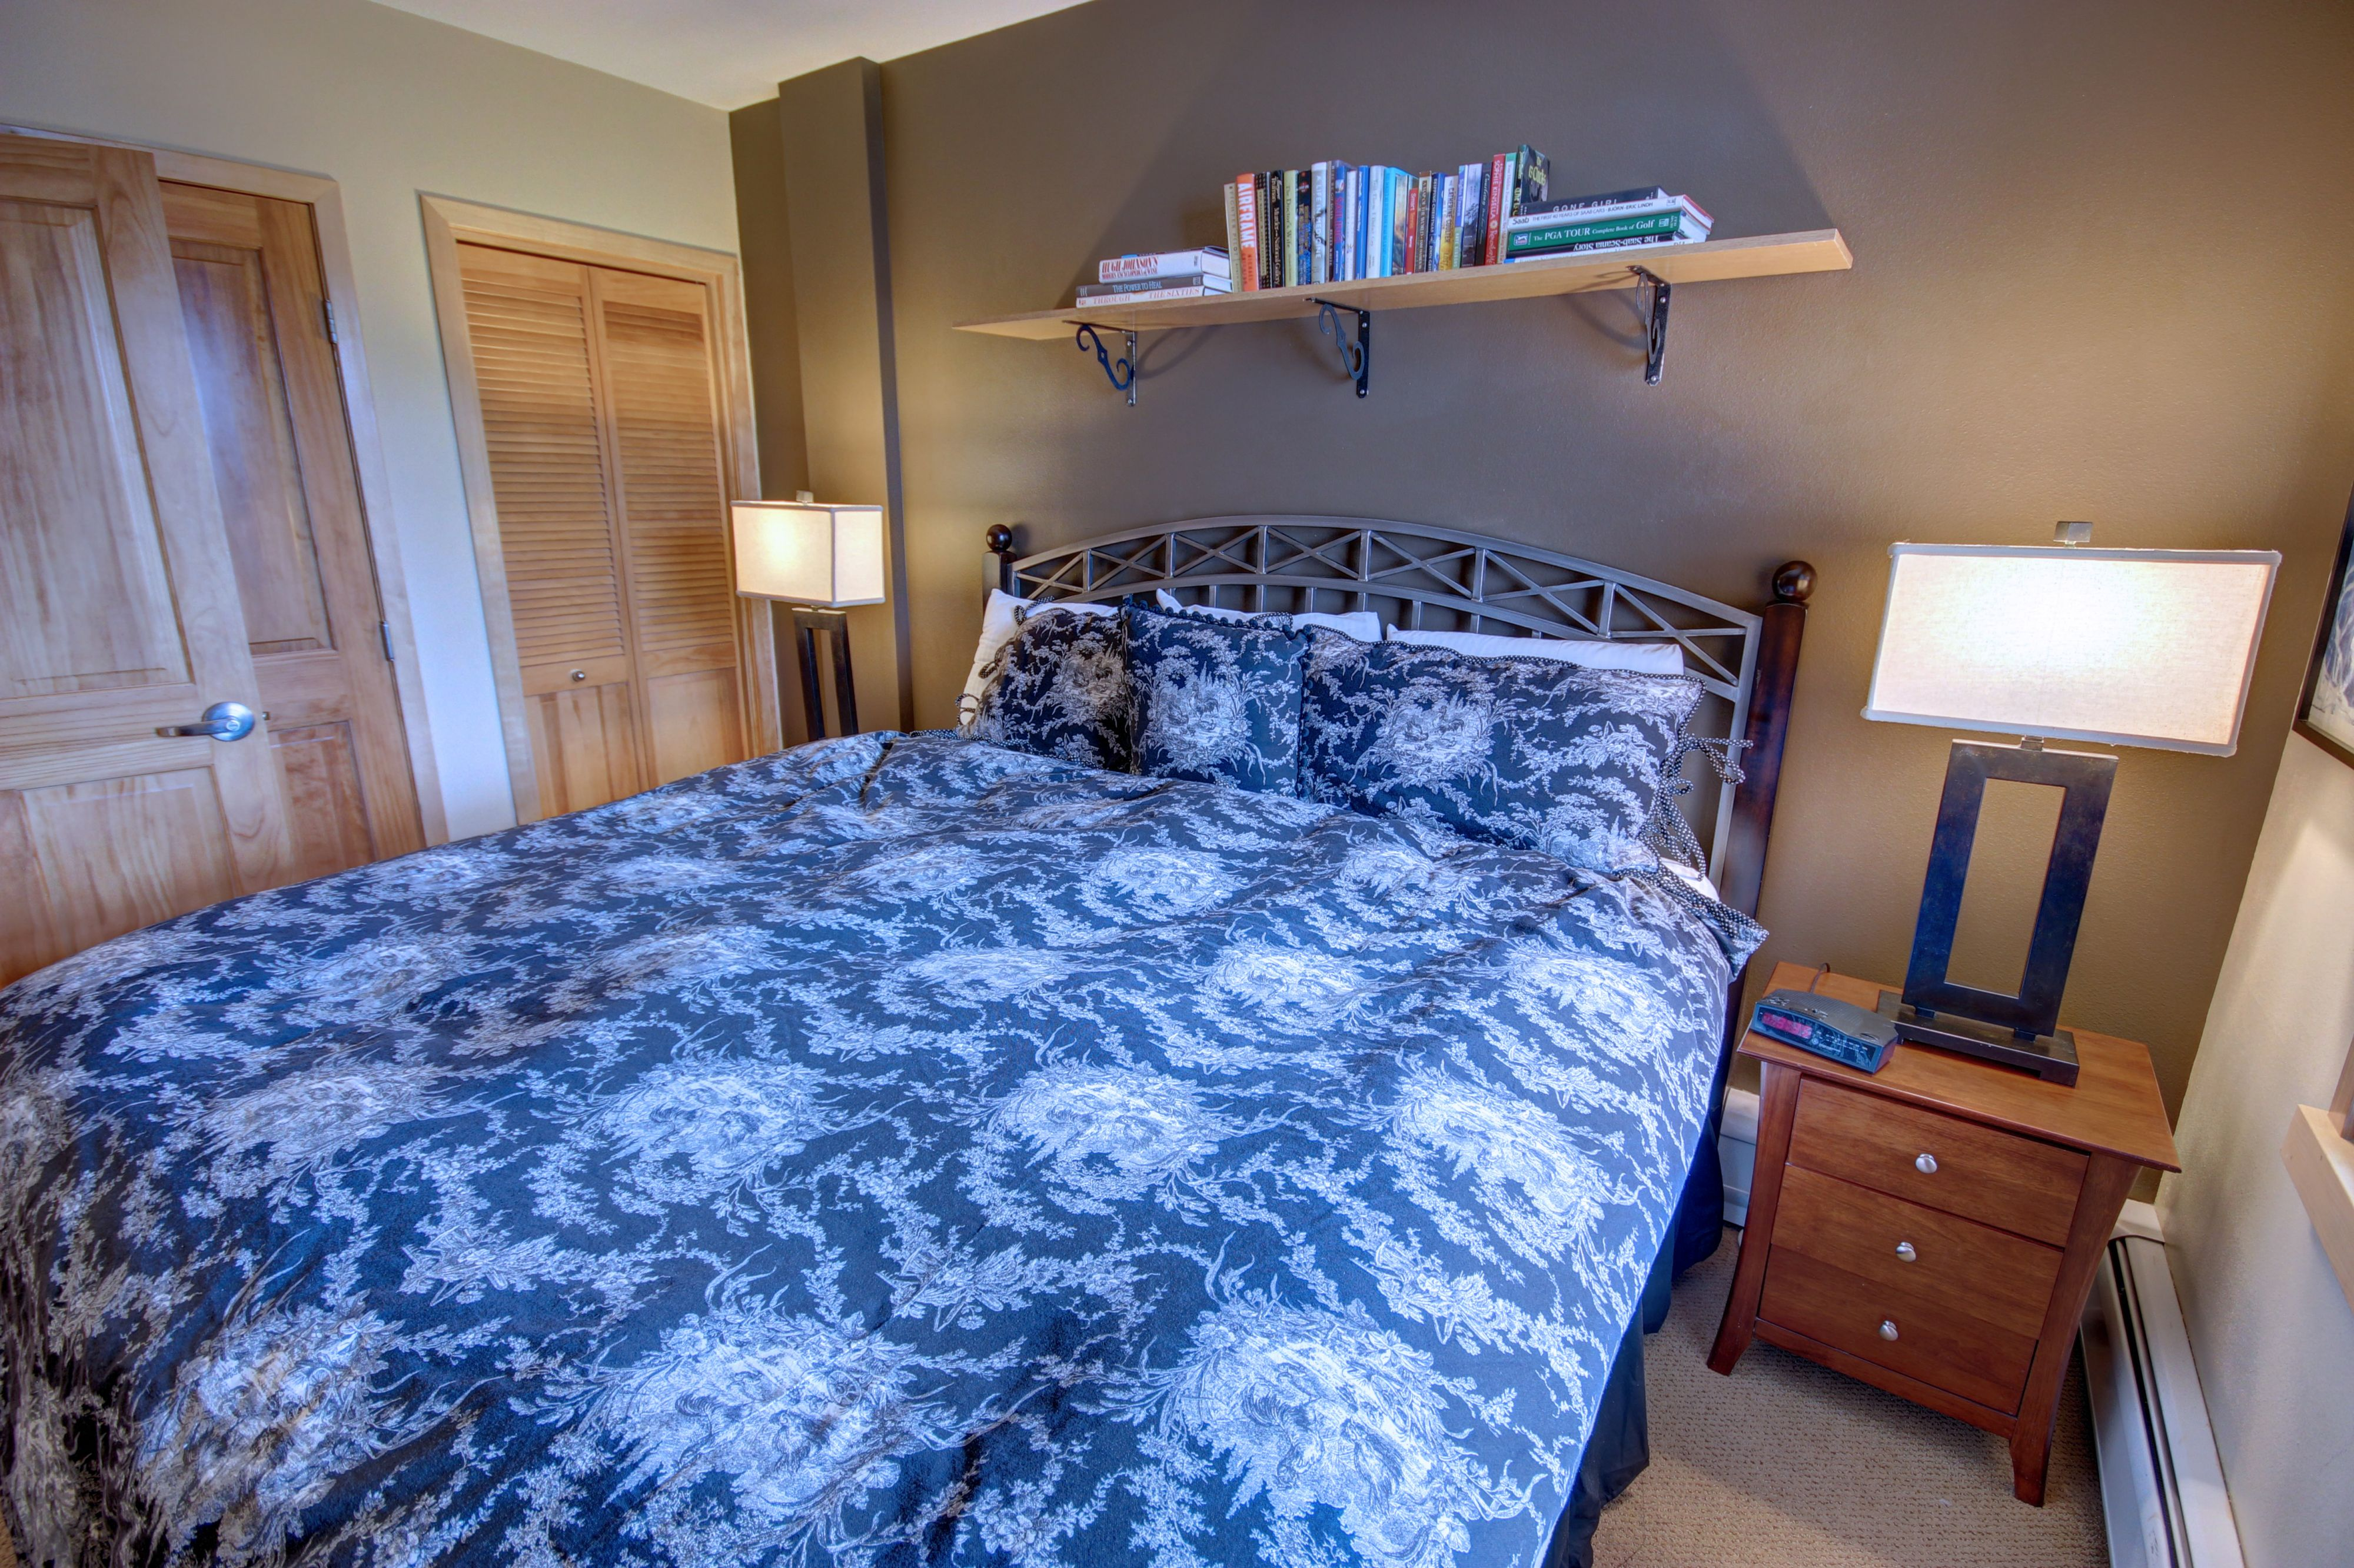 Bedroom with comfortable and relaxing bed